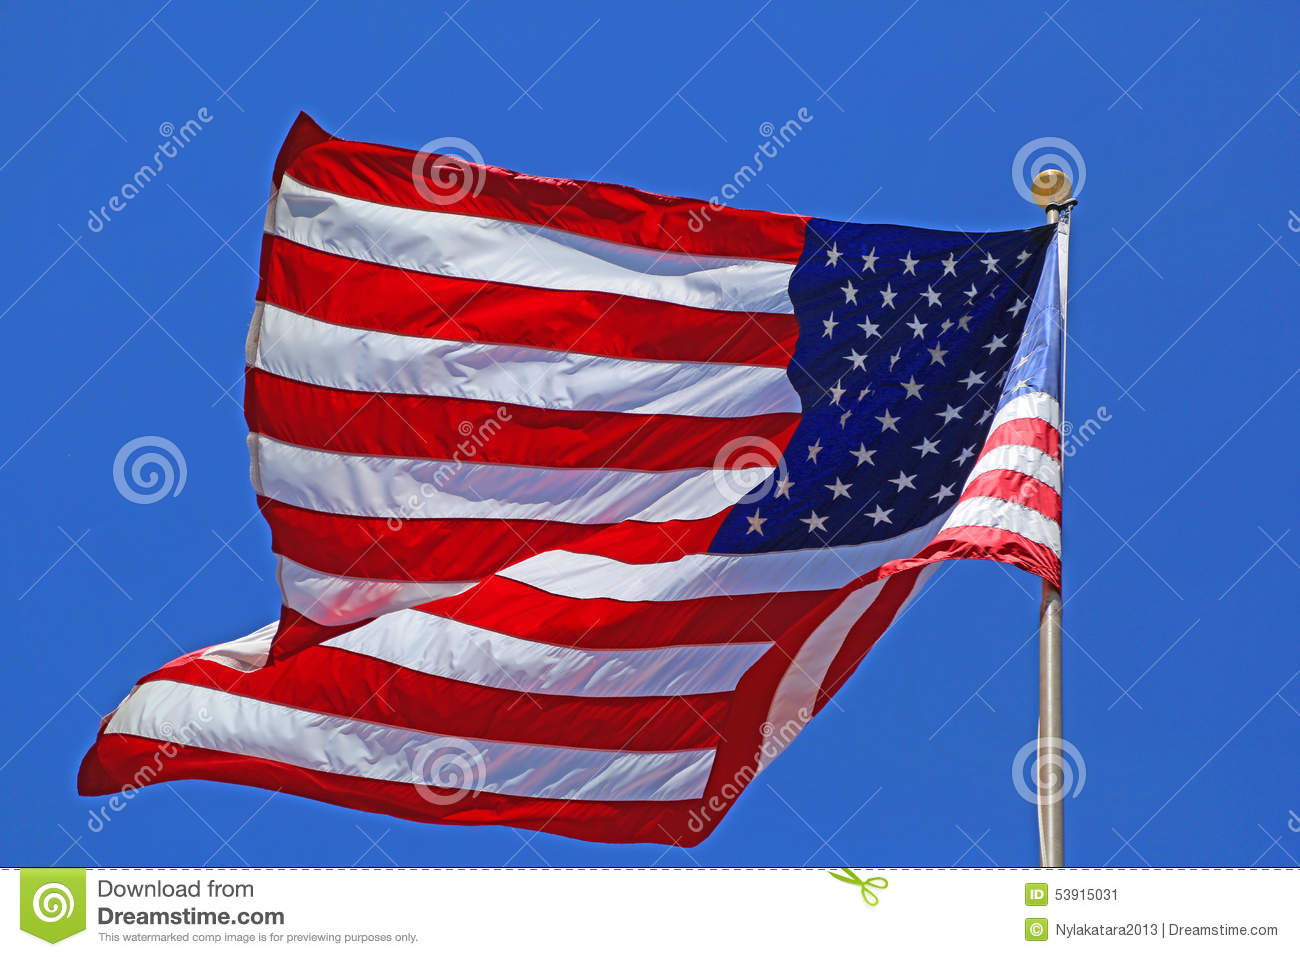 Flag Stock Photo - Image: 53915031 - photo#33